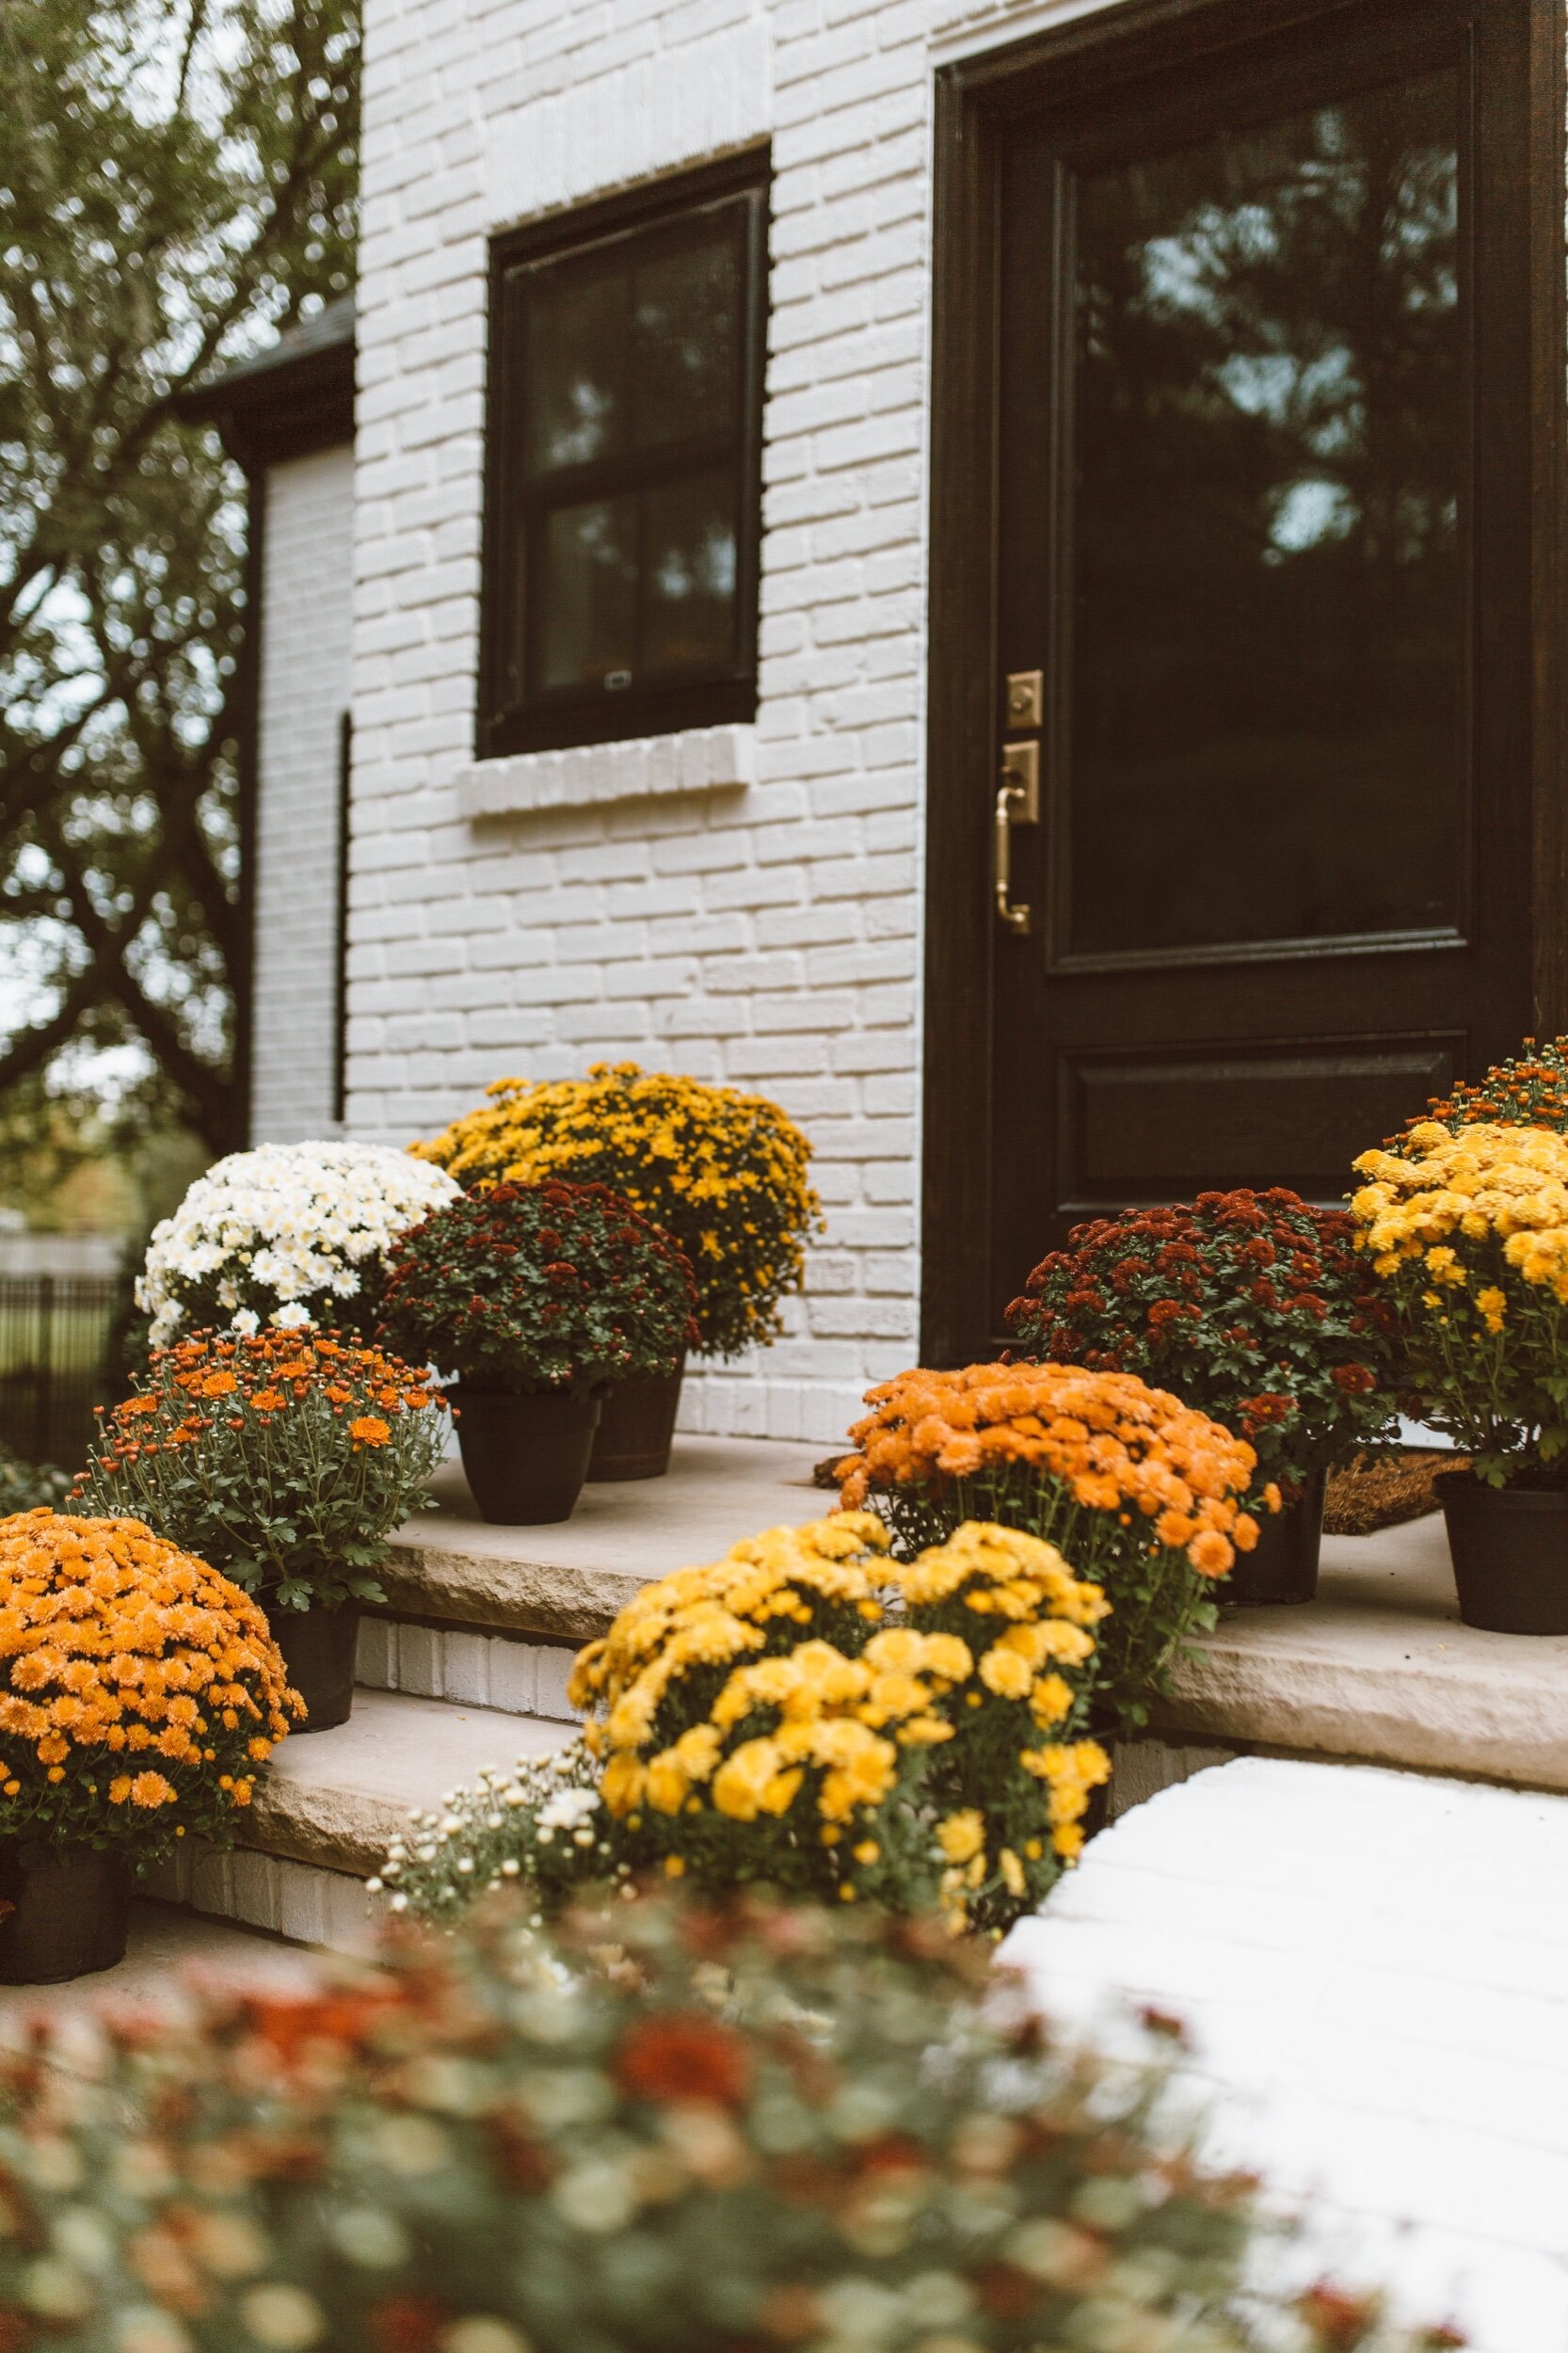 forthehome-how-to-care-for-fall-mums-02.jpeg